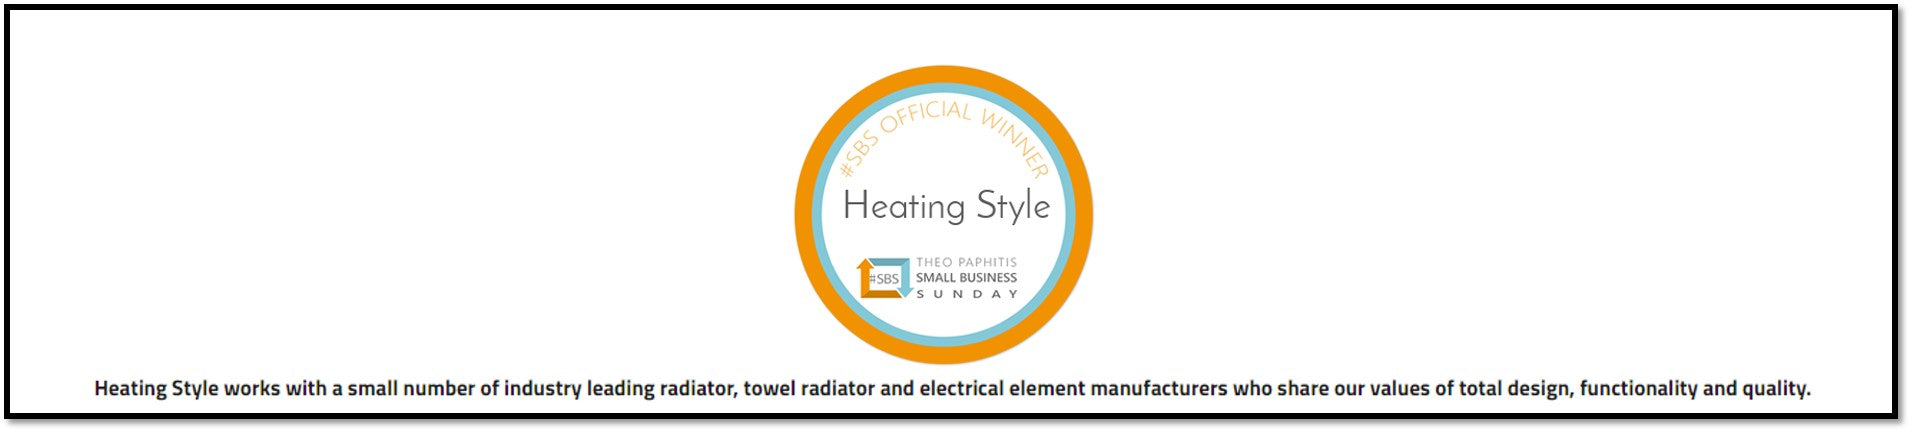 Heating Style About us Bannert